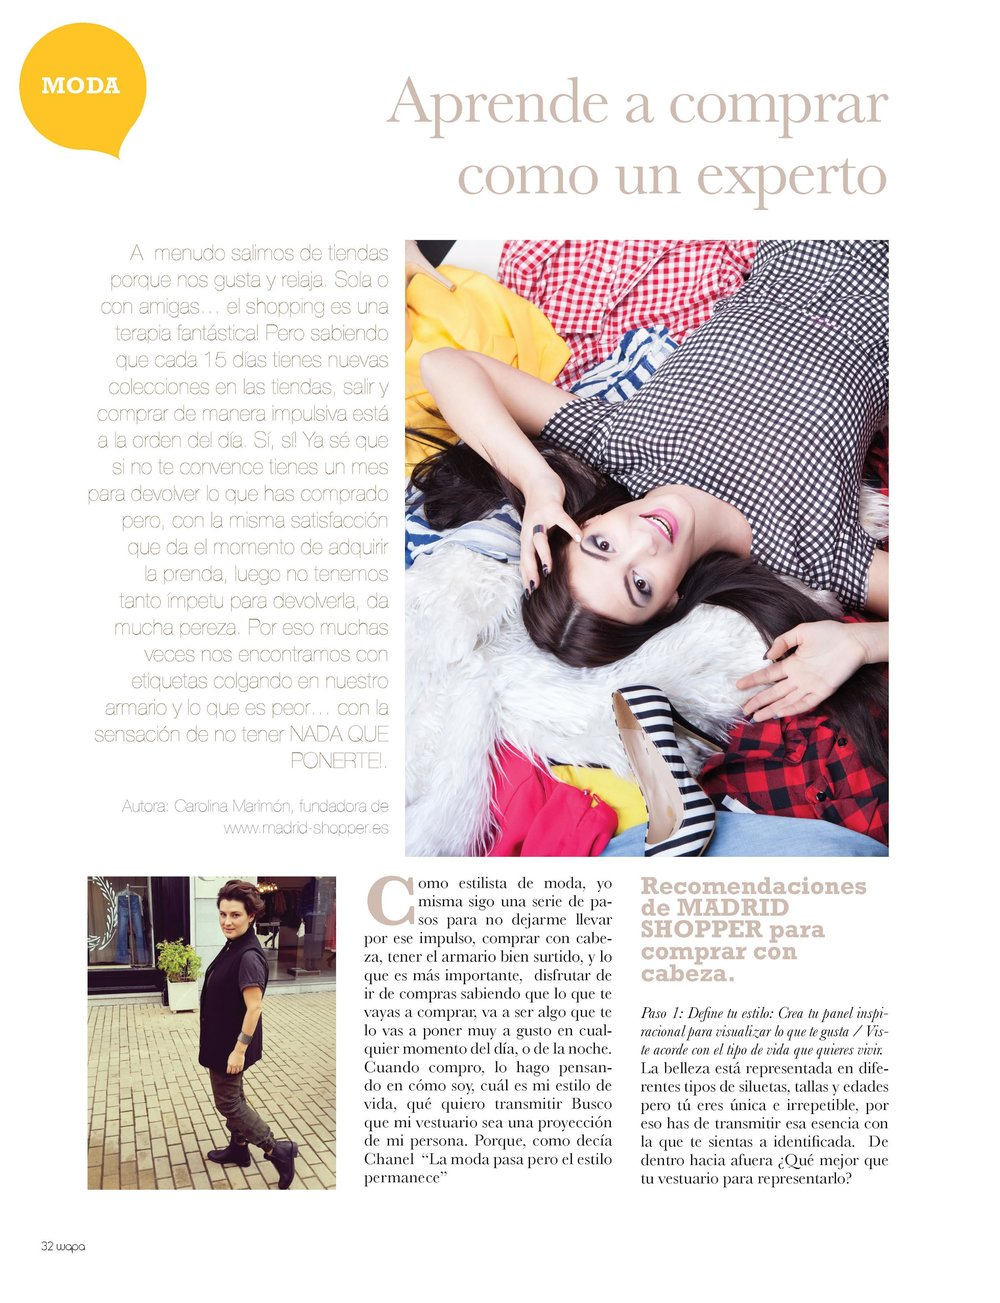 Wapa Magazine 50 – HOW TO BE A FASHION-SHOPPING EXPERT IN 4 STEPS   (Fall 2015)